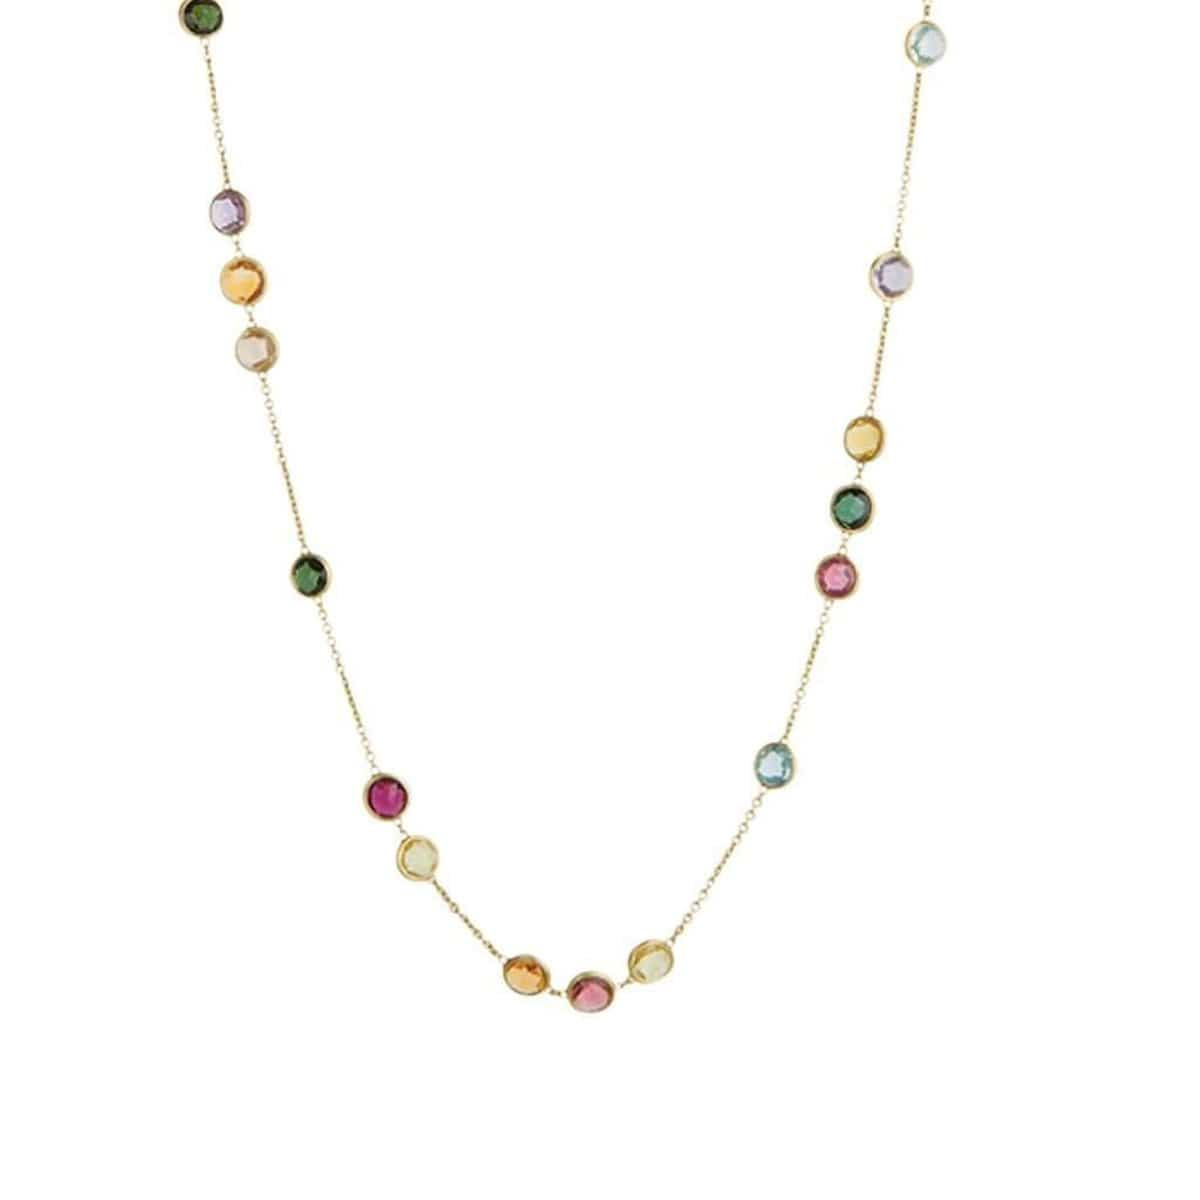 "18K Jaipur Mixed Gemstone Necklace - CB1309 MIX01 Y 36""-Marco Bicego-Renee Taylor Gallery"